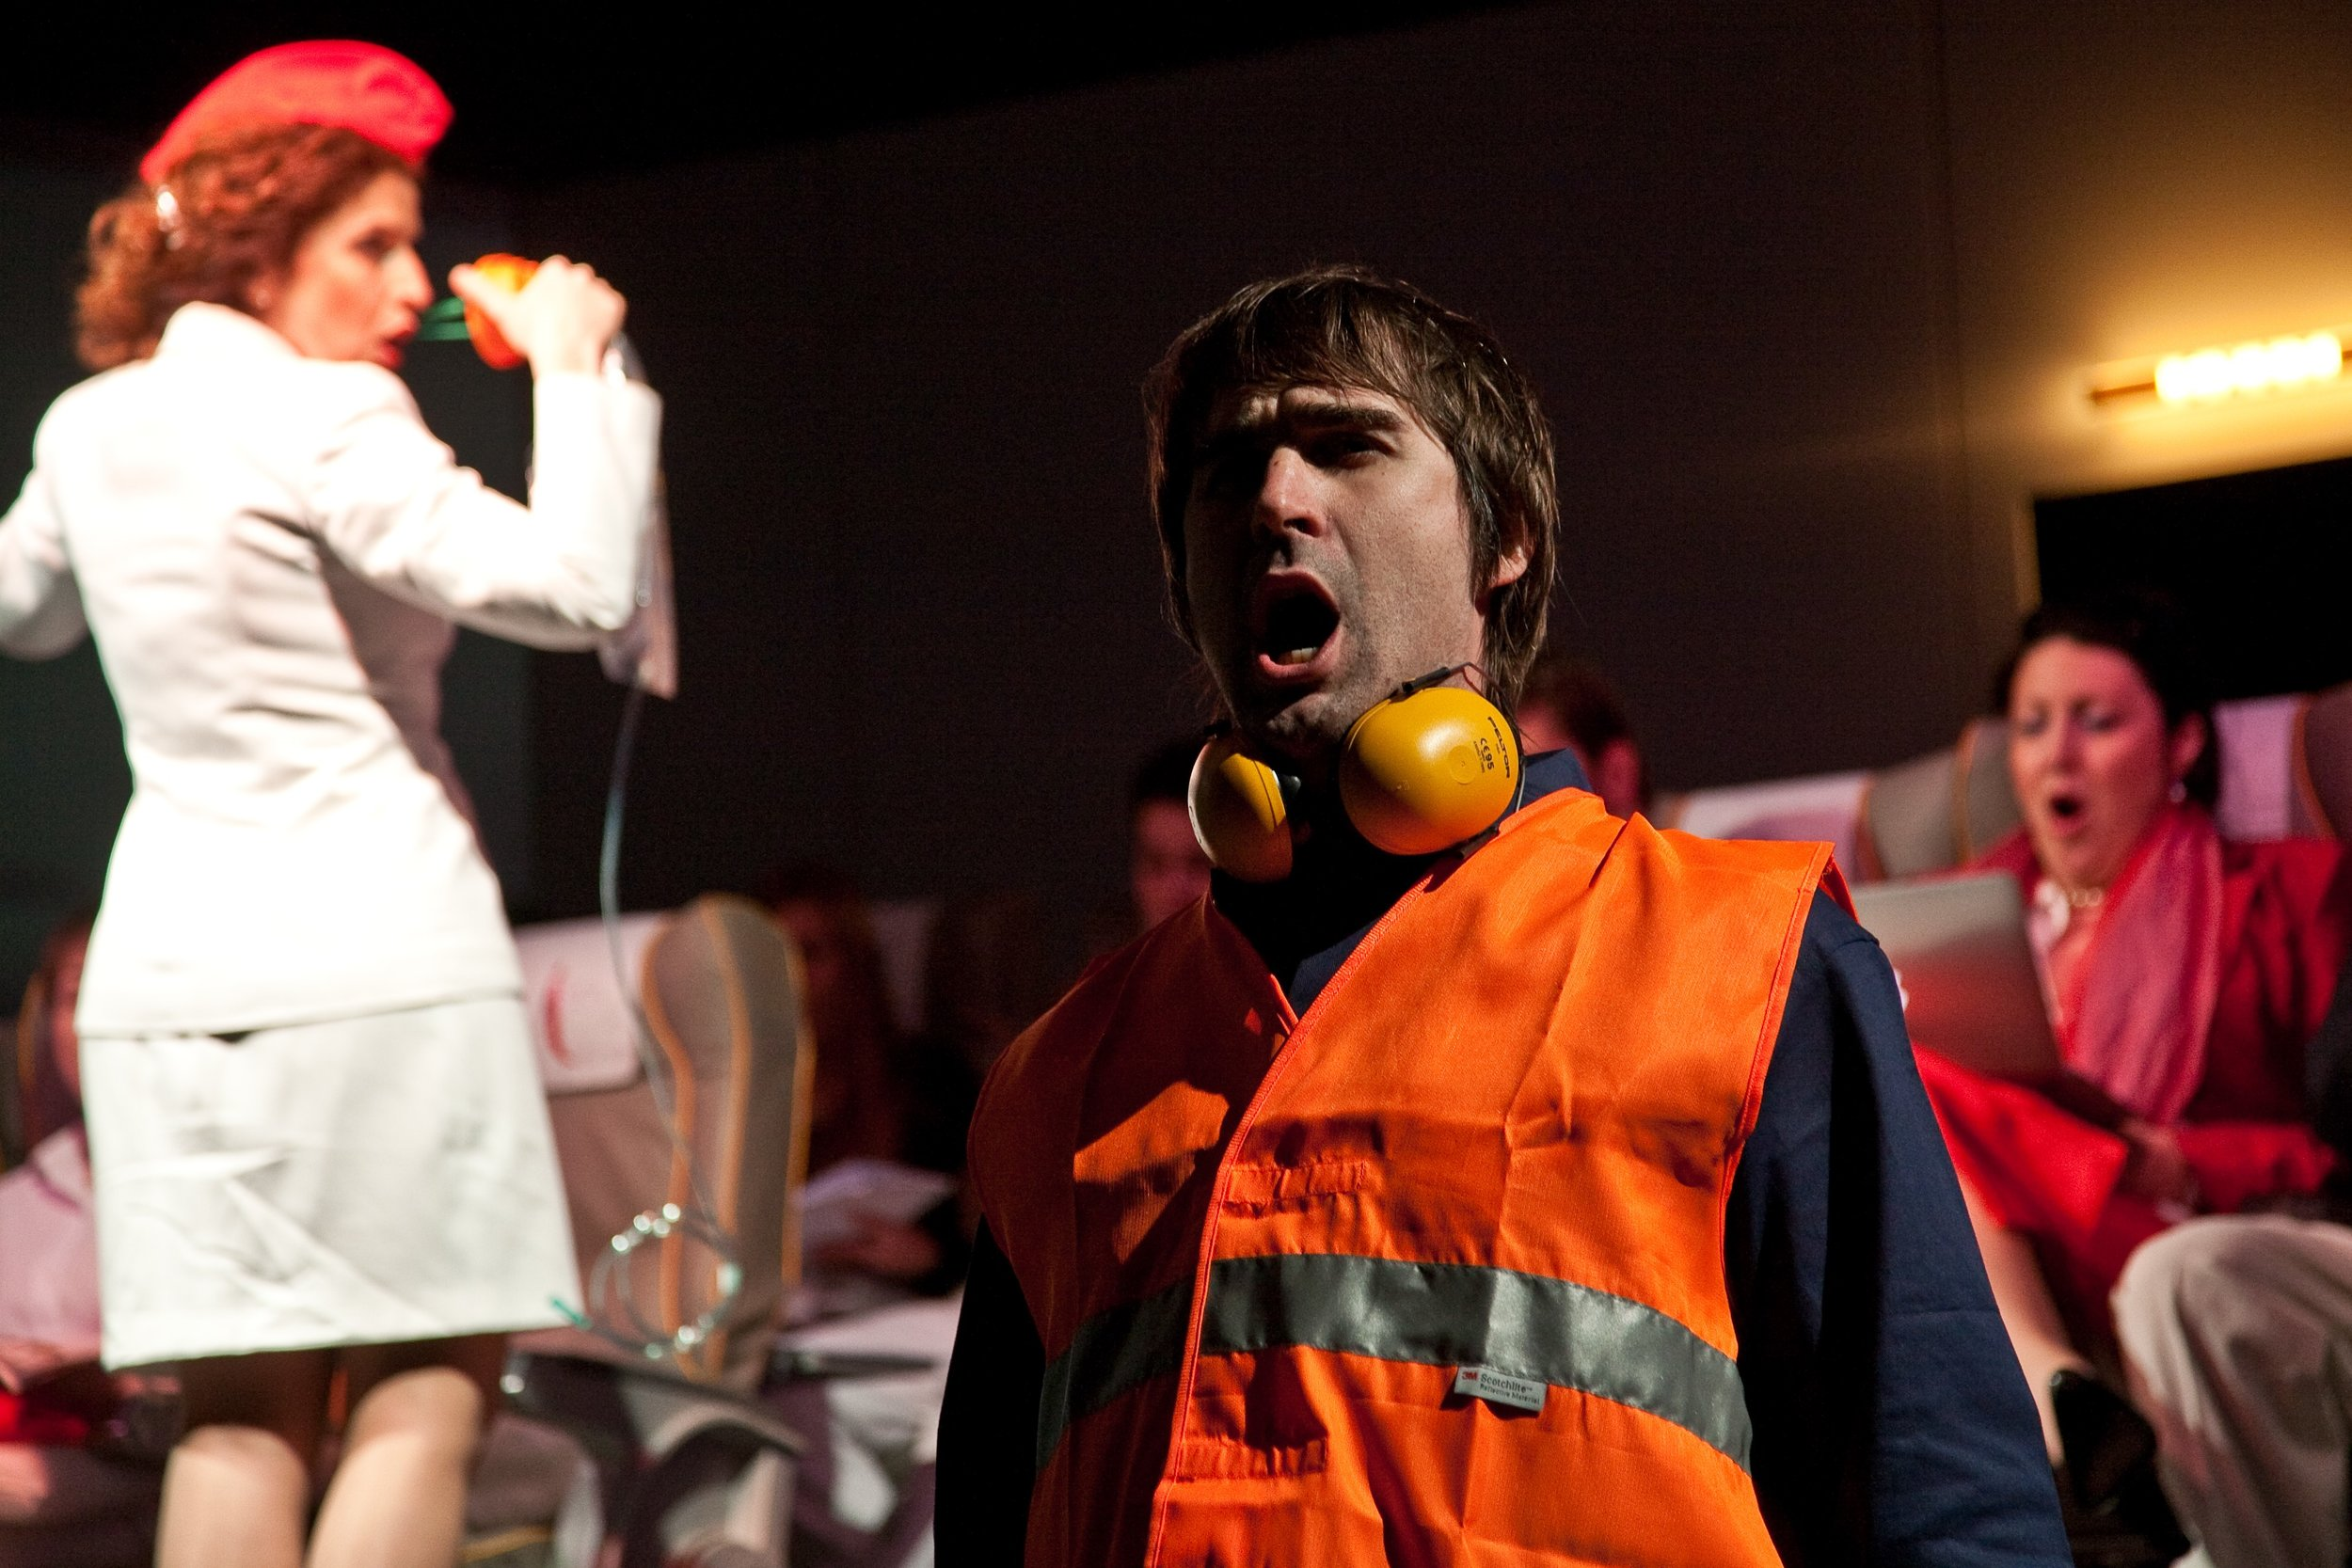 2011 Production in Verbania Italy of Airline Icarus